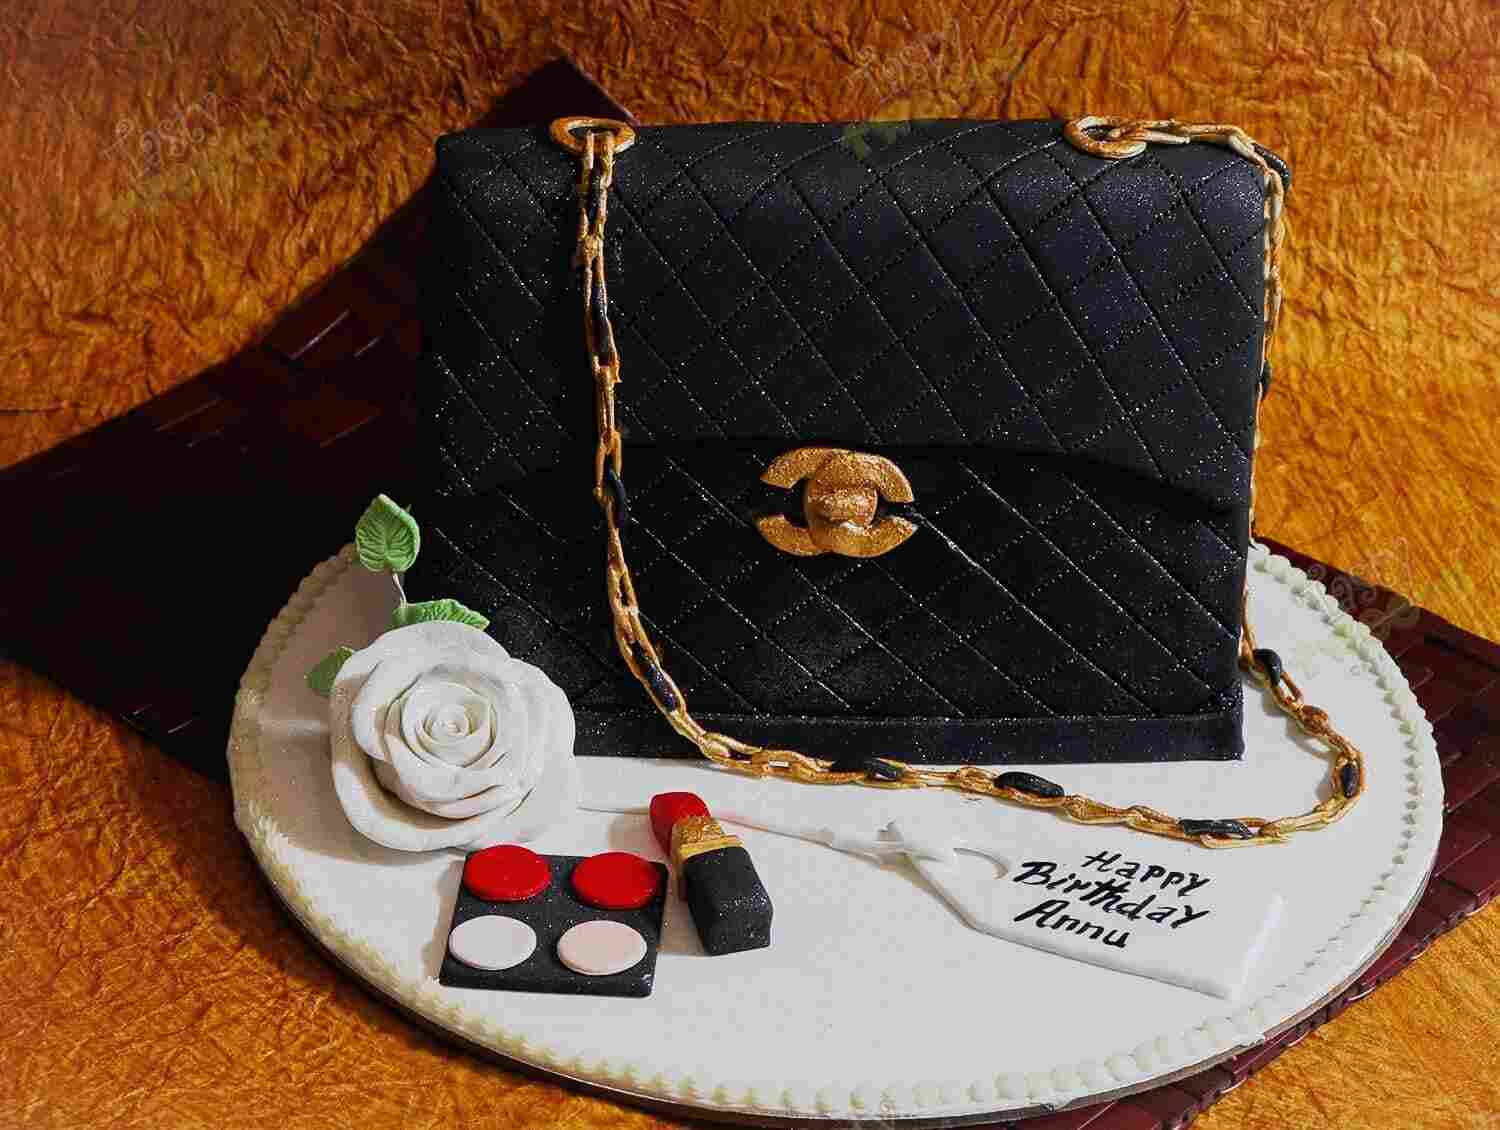 Am Crazy About Gucci Cakes in Gurgaon